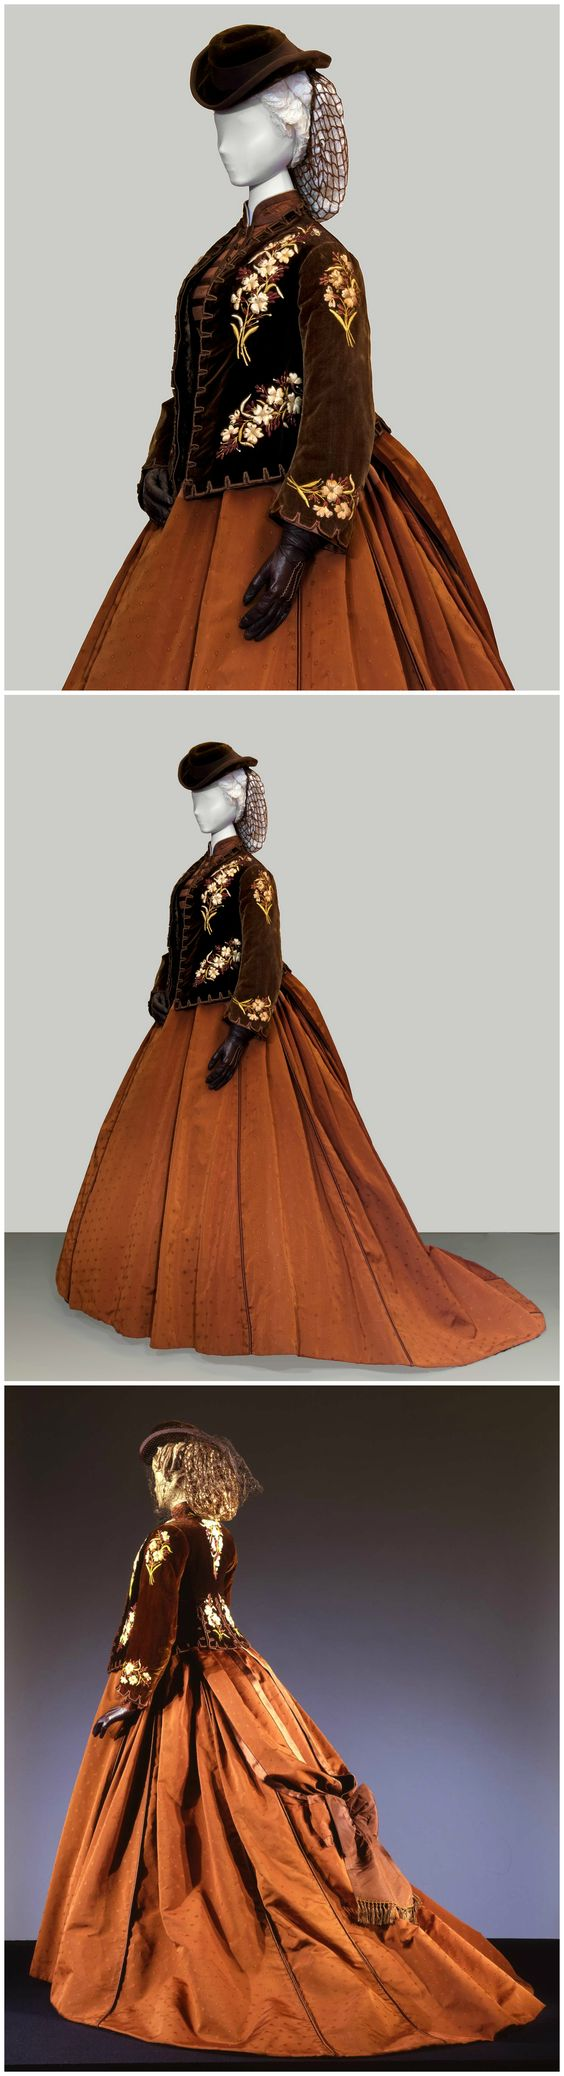 1860s-style costume, worn by Romy Schneider in the role of Empress Elisabeth of Austria in the film Ludwig (1972). Designed by Piero Tosi. Short jacket in brown velvet with small flowers embroidered in ivory and beige silk, lined in otter. Gown in brown with big satin bow. Collection of Pitti Palace Costume Gallery, via: (Top & Middle): Eventi Culturali Magazine; (Bottom): Europeana Fashion Tumblr (photo: Gabinetto fotografico SBAS, Mario Carrieri).: